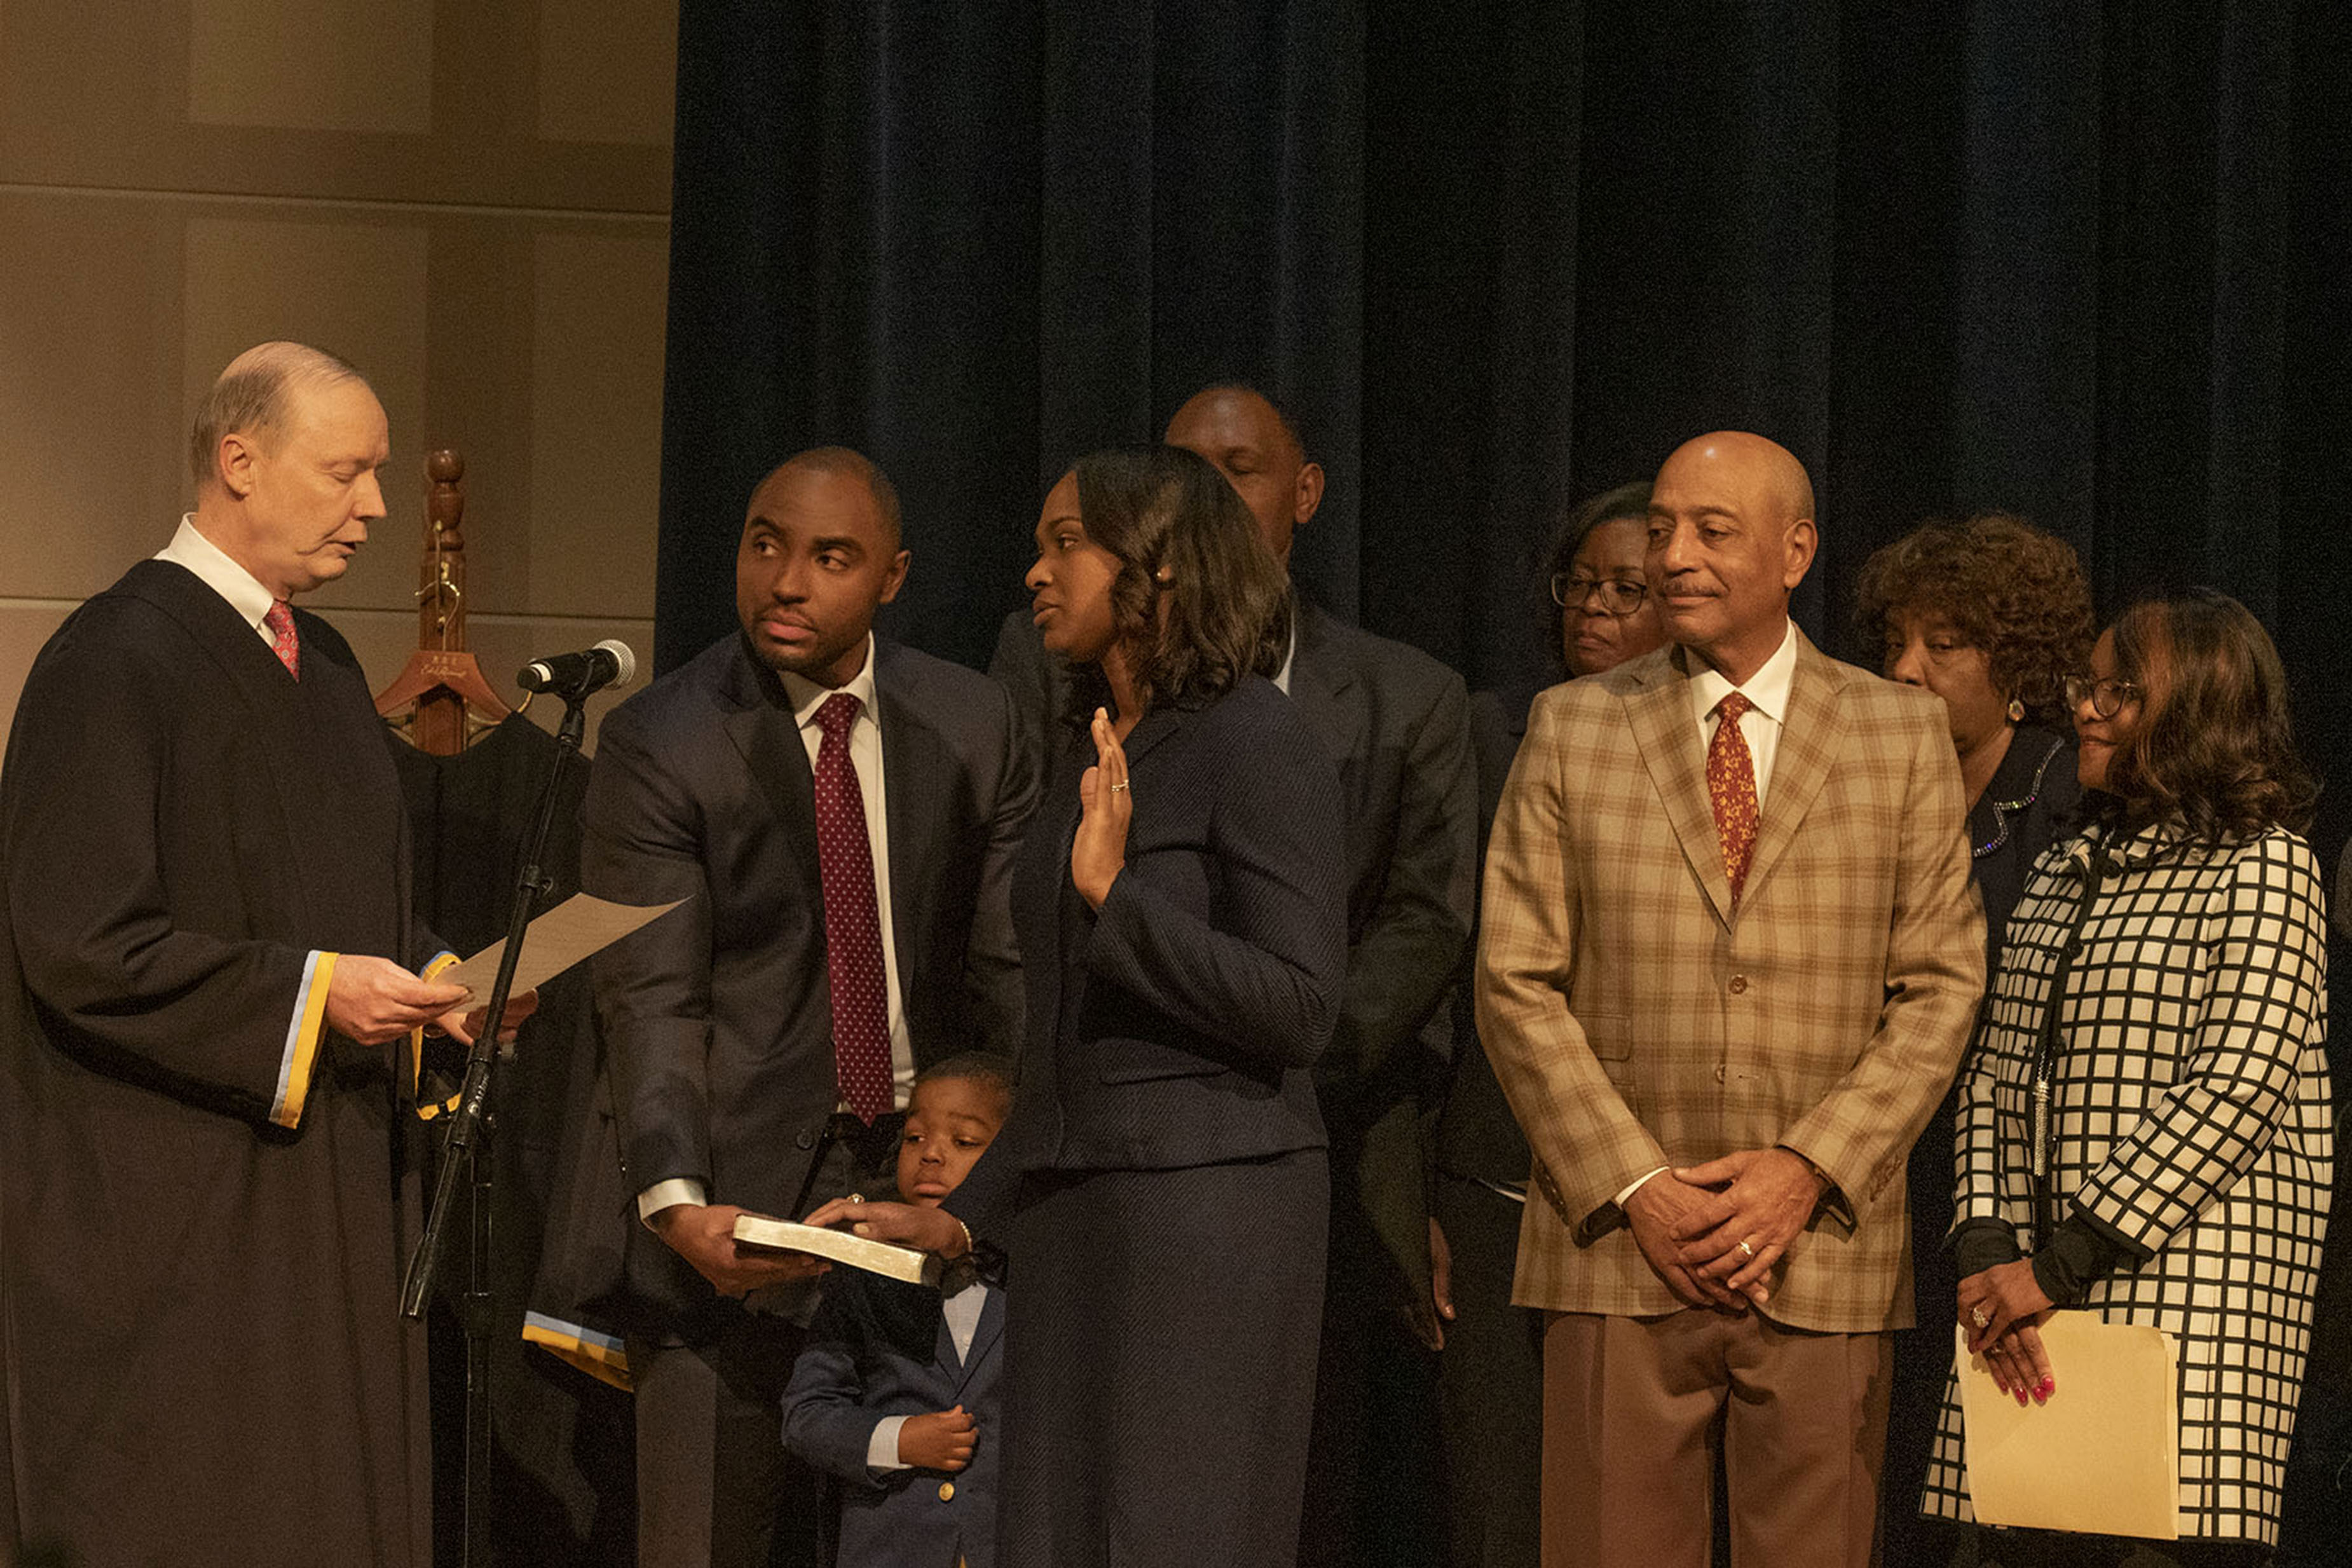 Tamika Montgomery-Reeves (with her hand raised) is sworn in by Delaware Supreme Court Chief Justice Colin Seitz, Jr. (l), as the first-ever African American to serve as an associate justice on the Delaware Supreme Court.